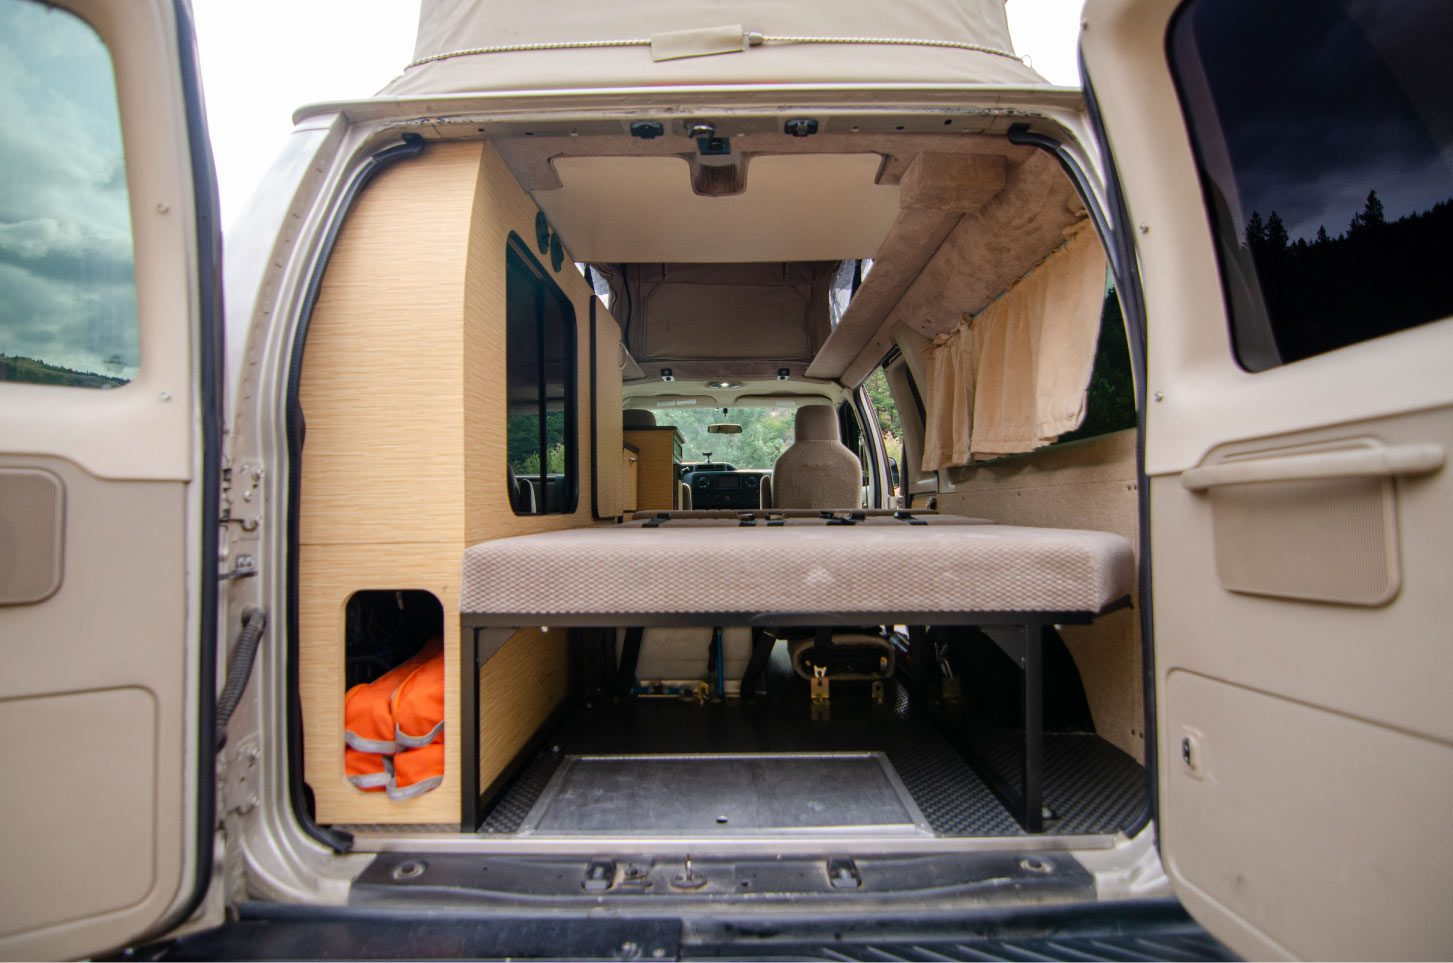 Rear view inside a 4wd Sportsmobile on a Ford E-Series 4x4 Econoline Sportsmobile RB50 Layout Campervan conversion for sale built by Van Specialties